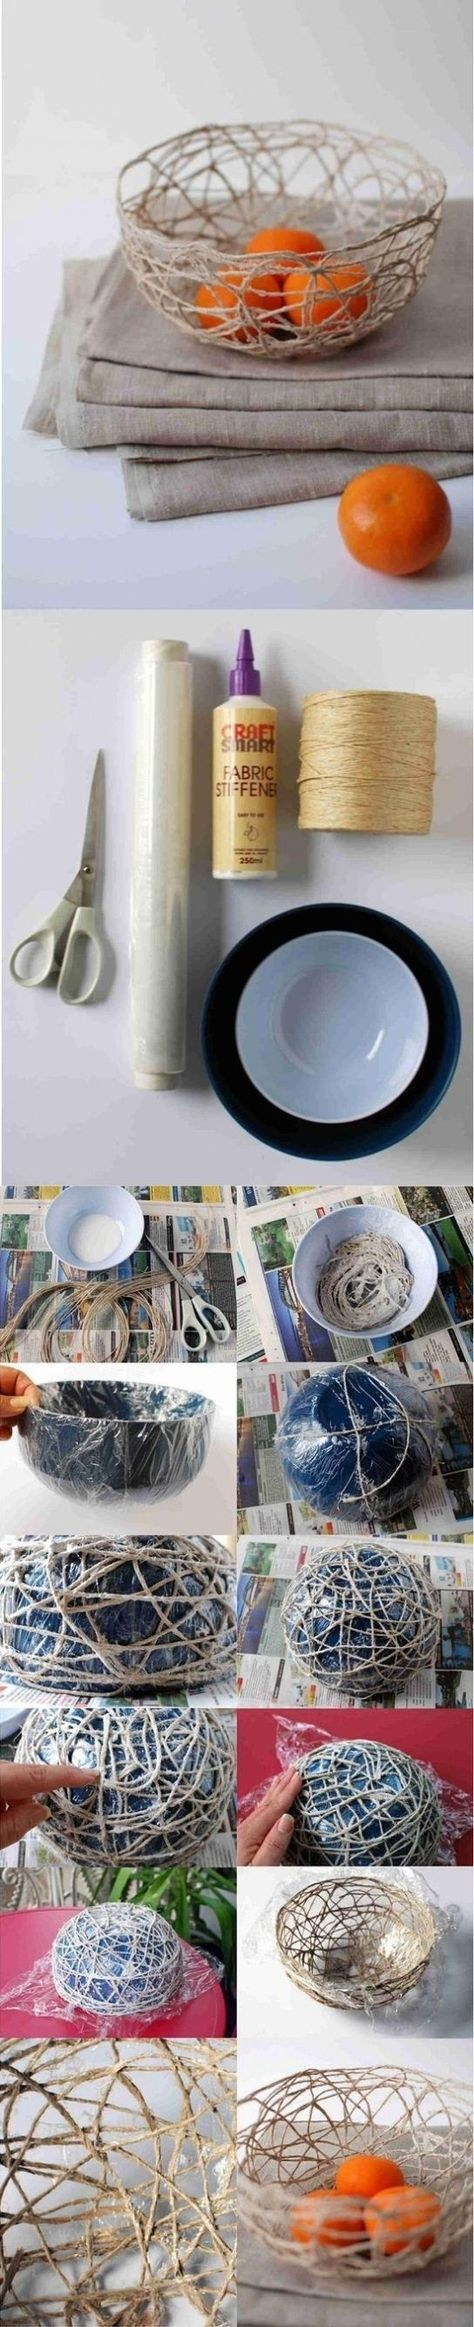 DIY Bowl diy crafts craft ideas easy crafts diy ideas diy idea diy home easy diy for the home crafty decor home ideas diy decorations diy bowl